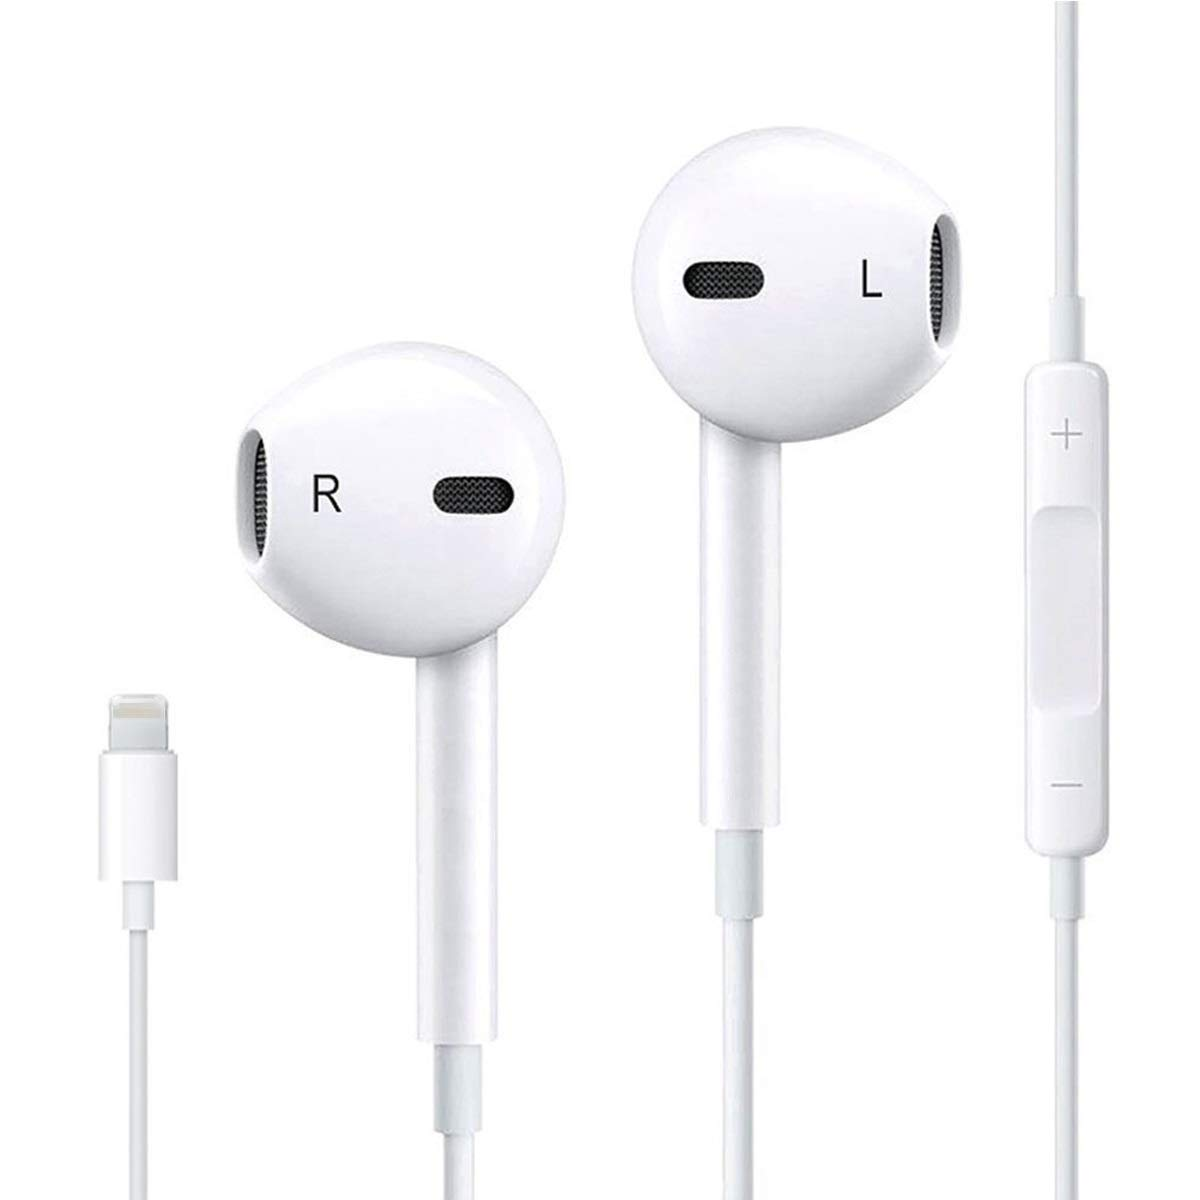 STongmu Headphones Earphones Earbuds with Microphone and Remote Control Compatible with iPhone